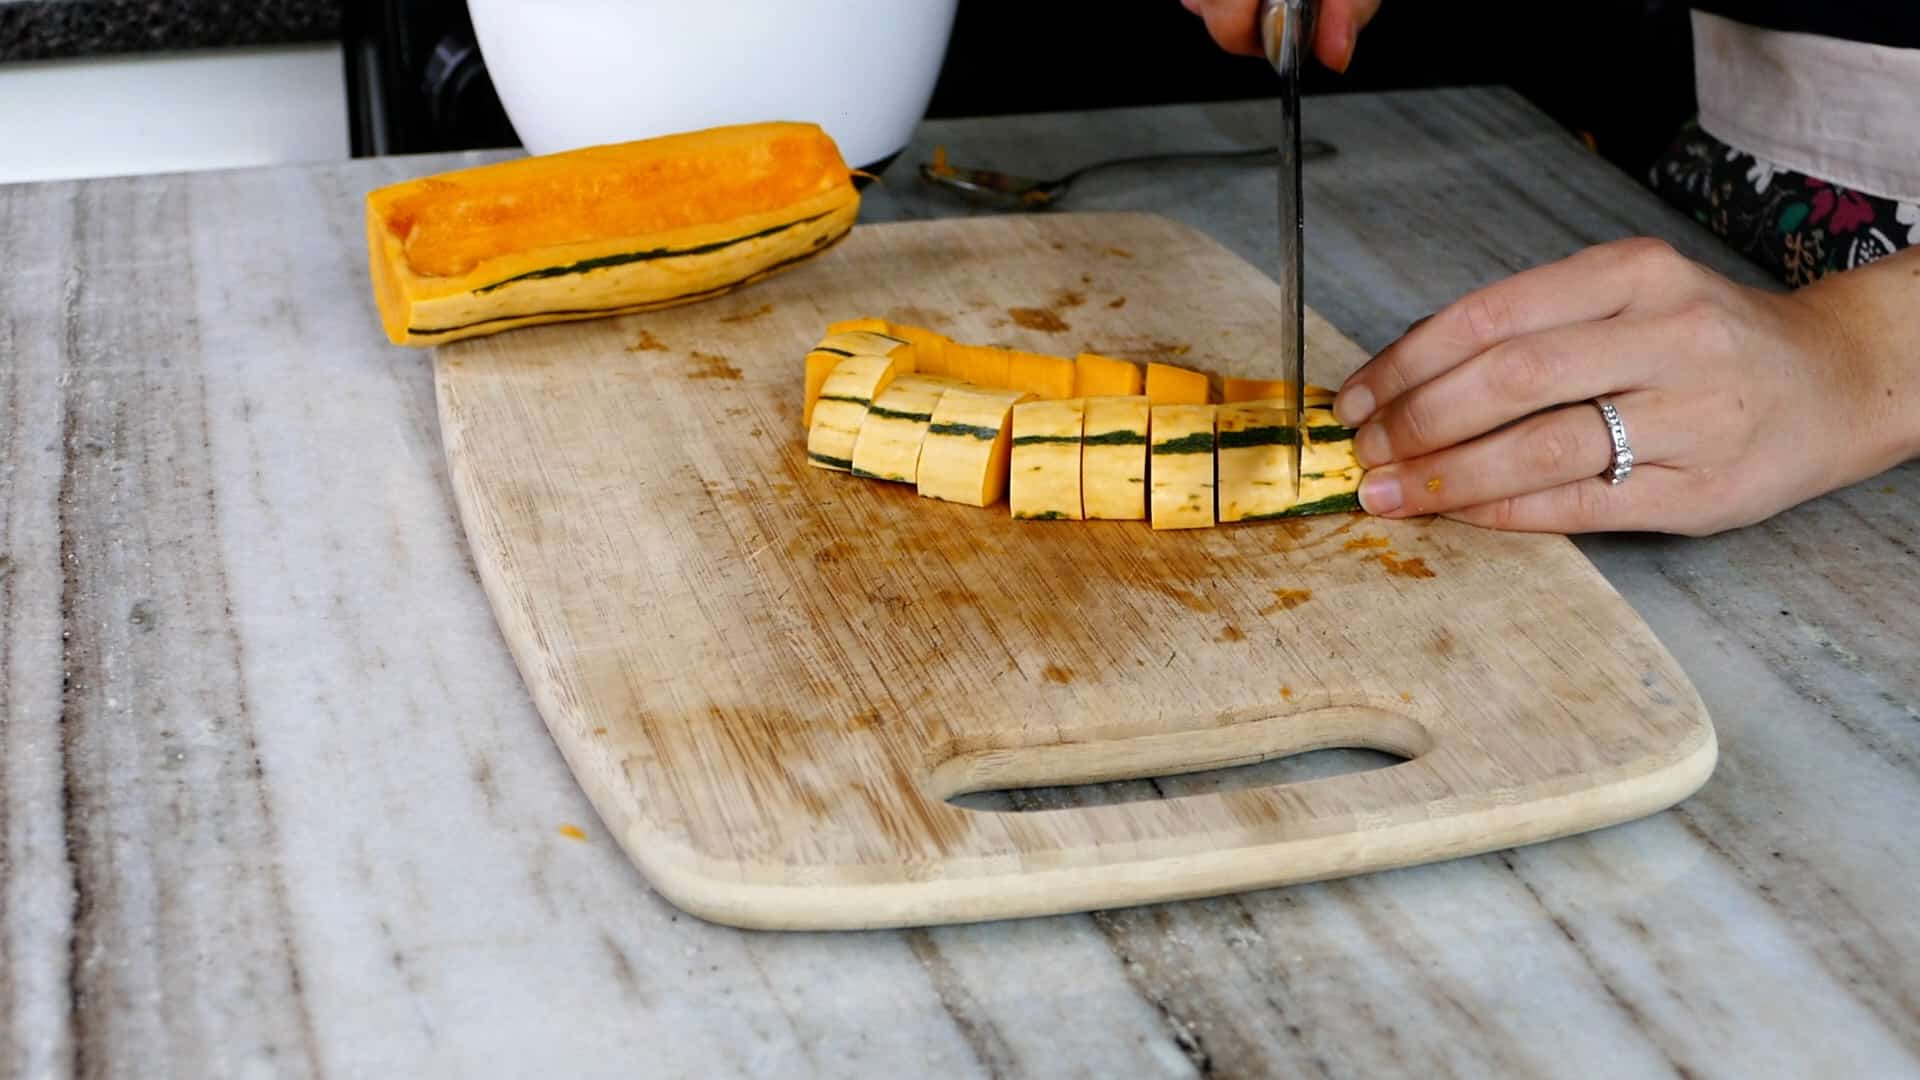 woman's hand cutting delicata squash into cubes on a cutting board